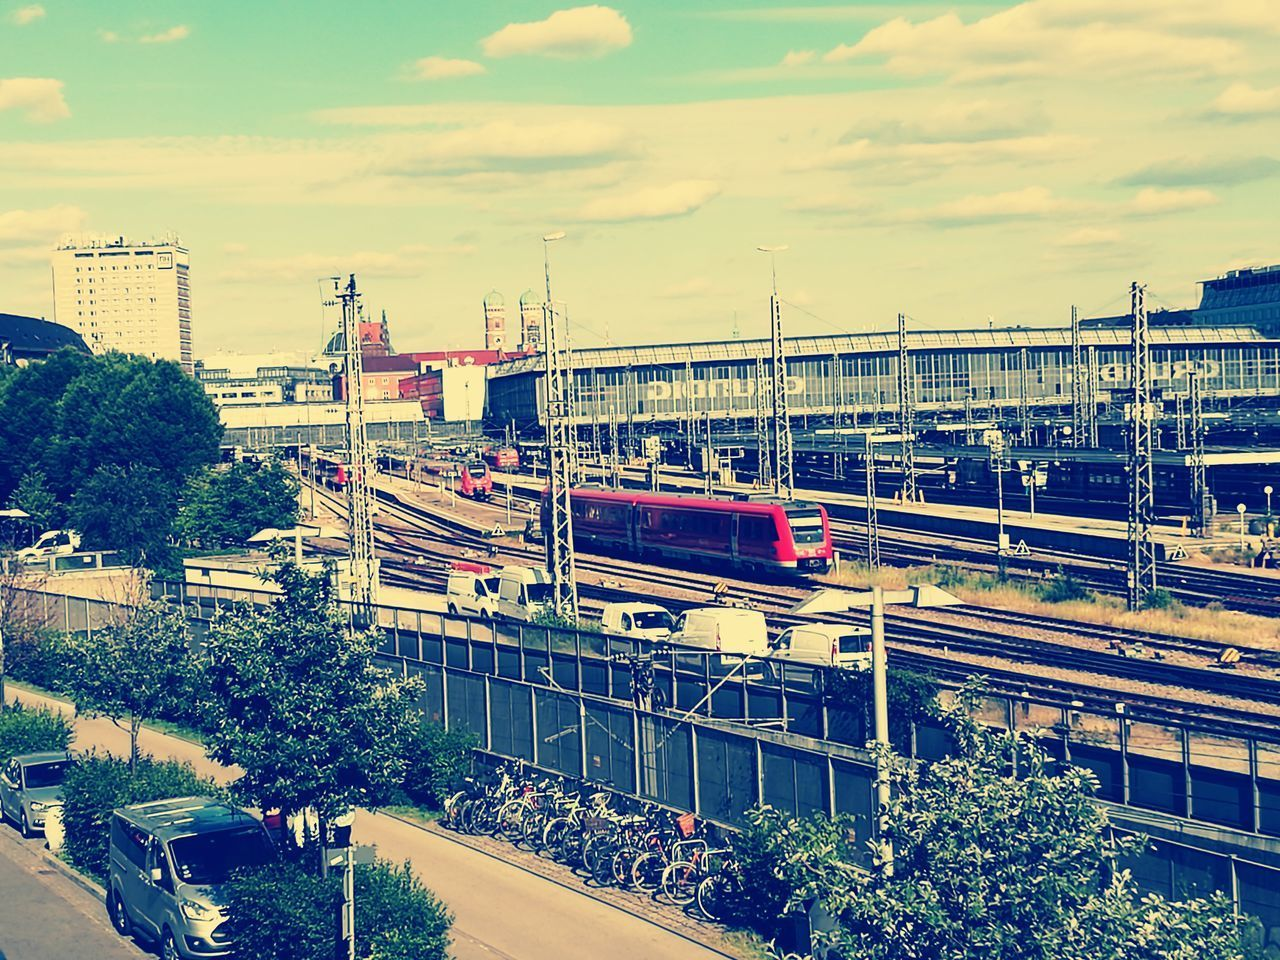 transportation, architecture, train - vehicle, built structure, mode of transport, rail transportation, public transportation, sky, connection, bridge - man made structure, high angle view, no people, tree, cloud - sky, city, day, outdoors, building exterior